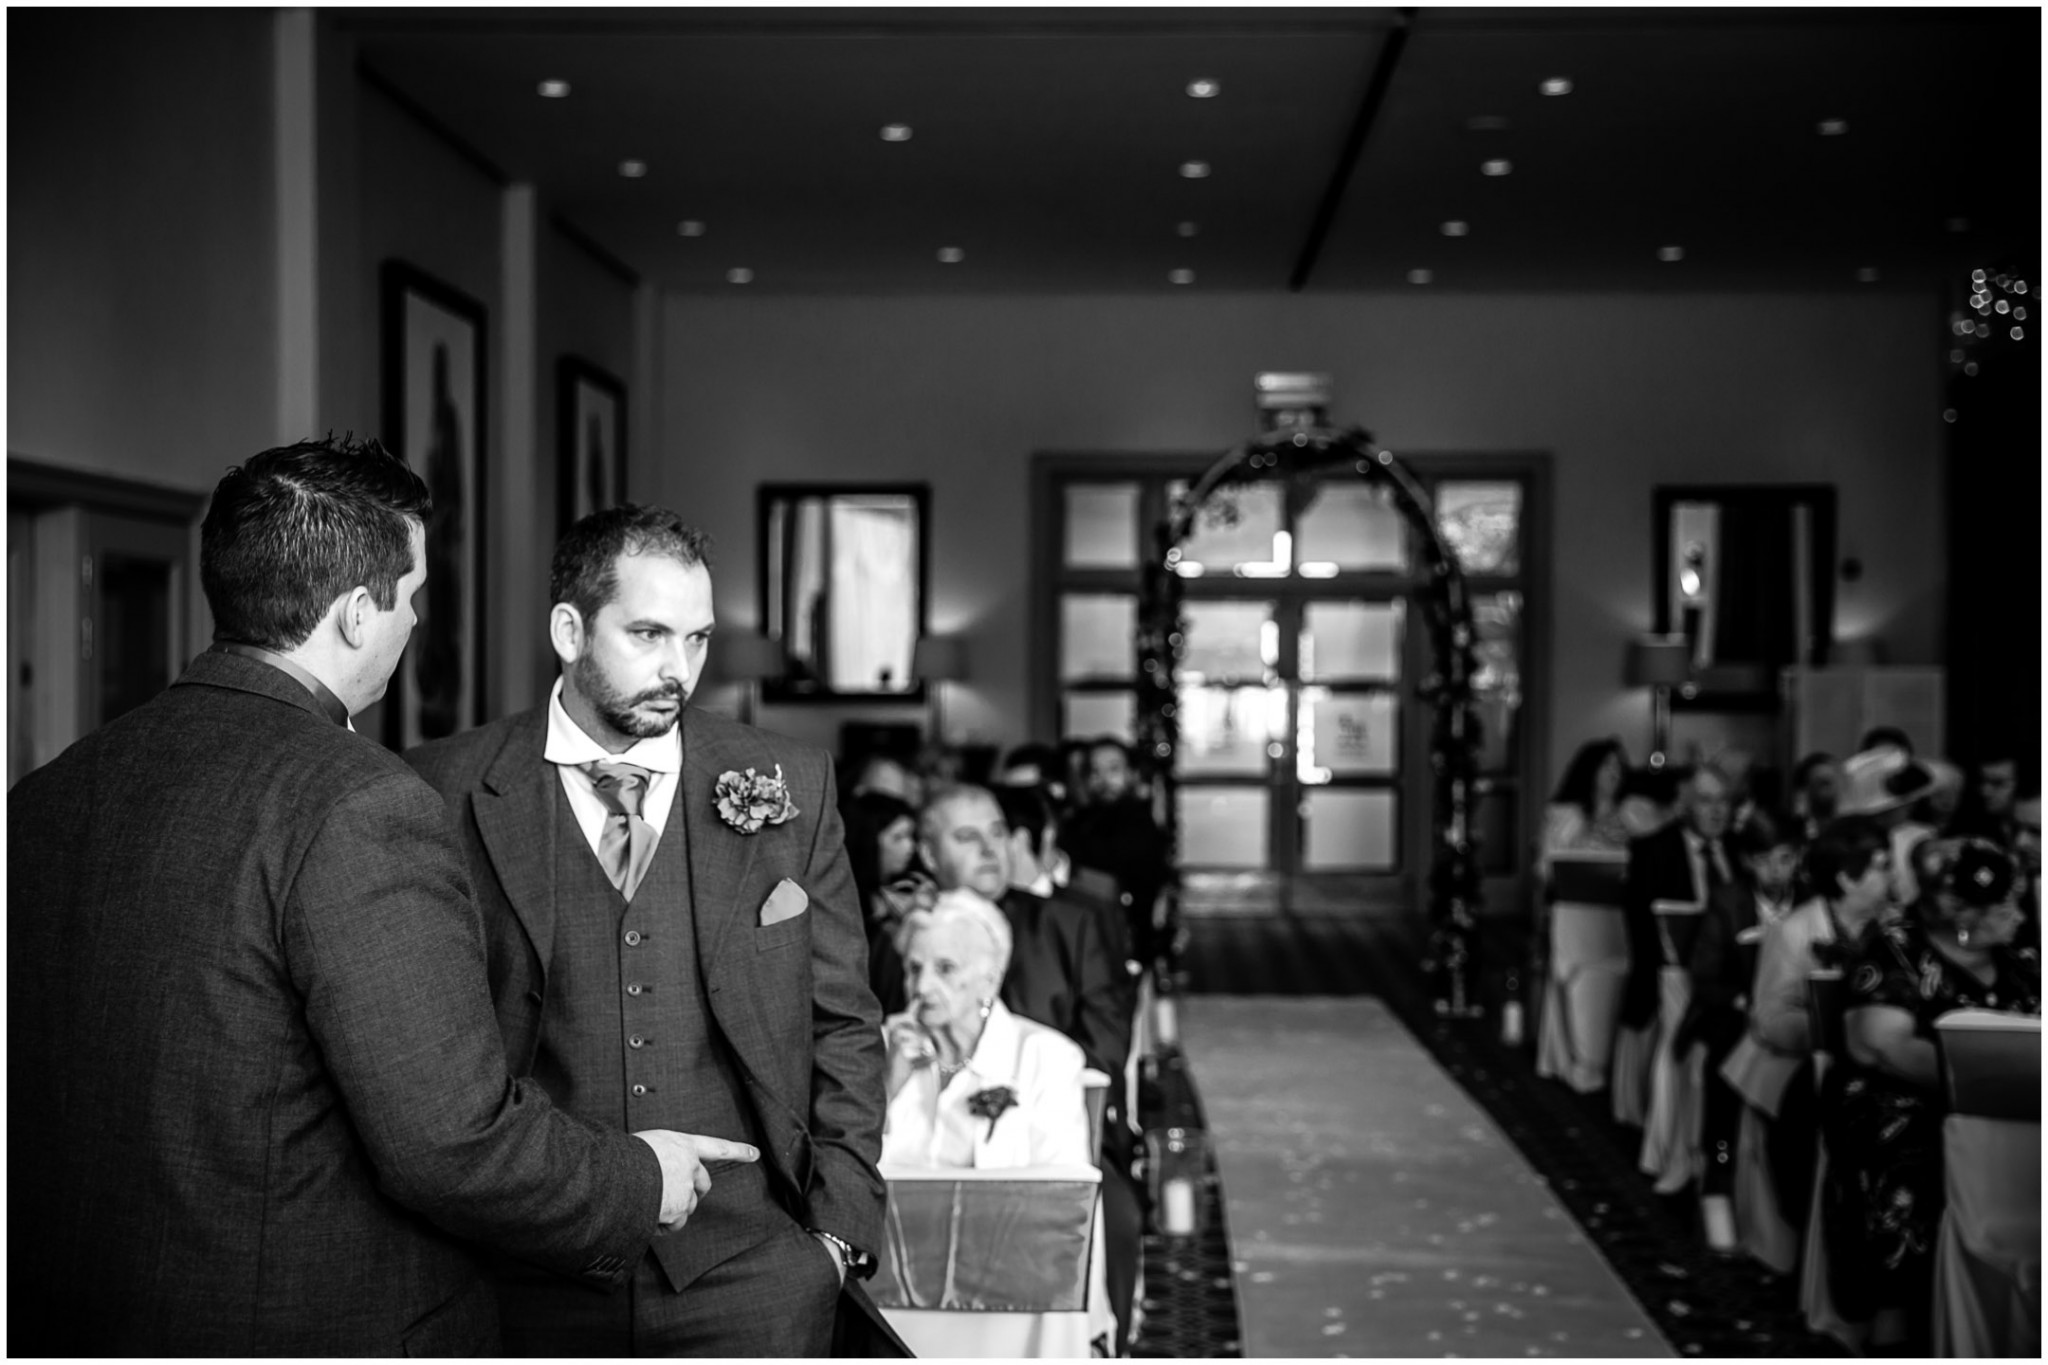 bowood-hotel-wedding-photography-ria-chris-011